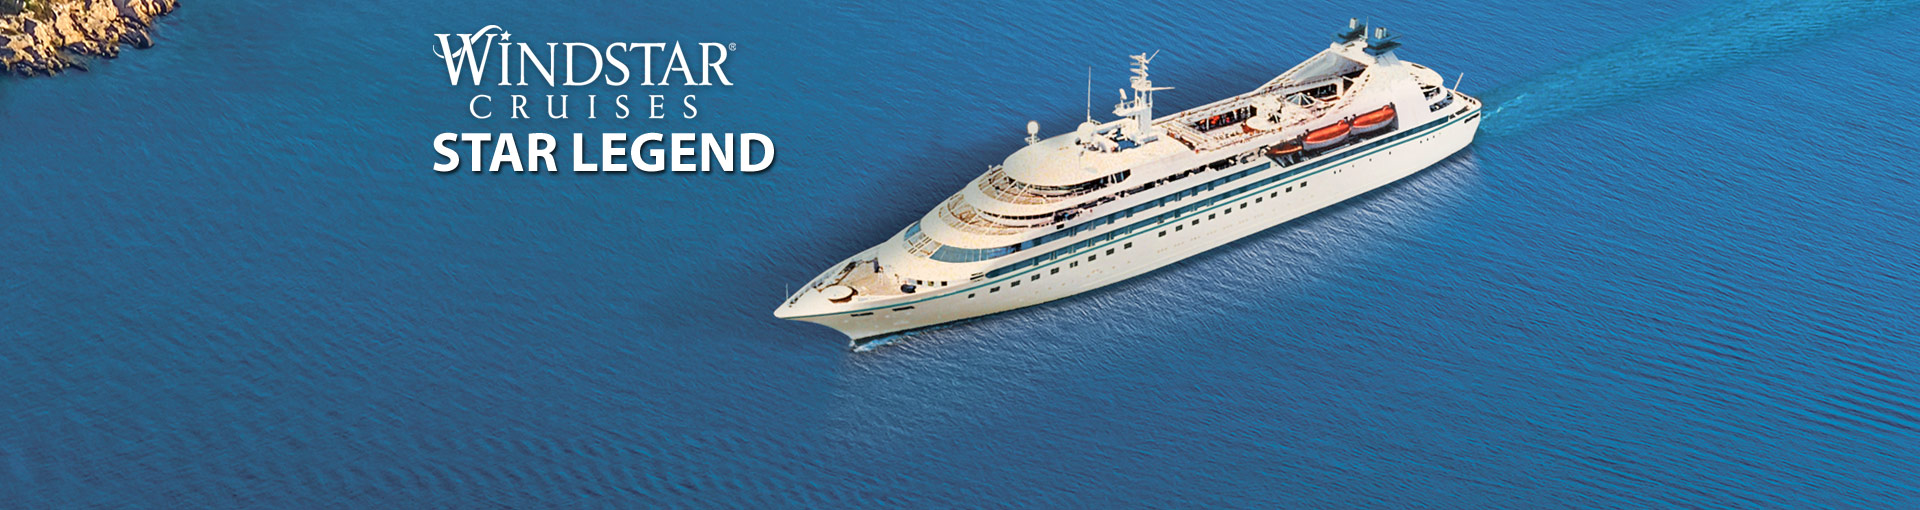 Windstar Cruises And Cruise Deals Destinations Ships - Windsong cruise ship